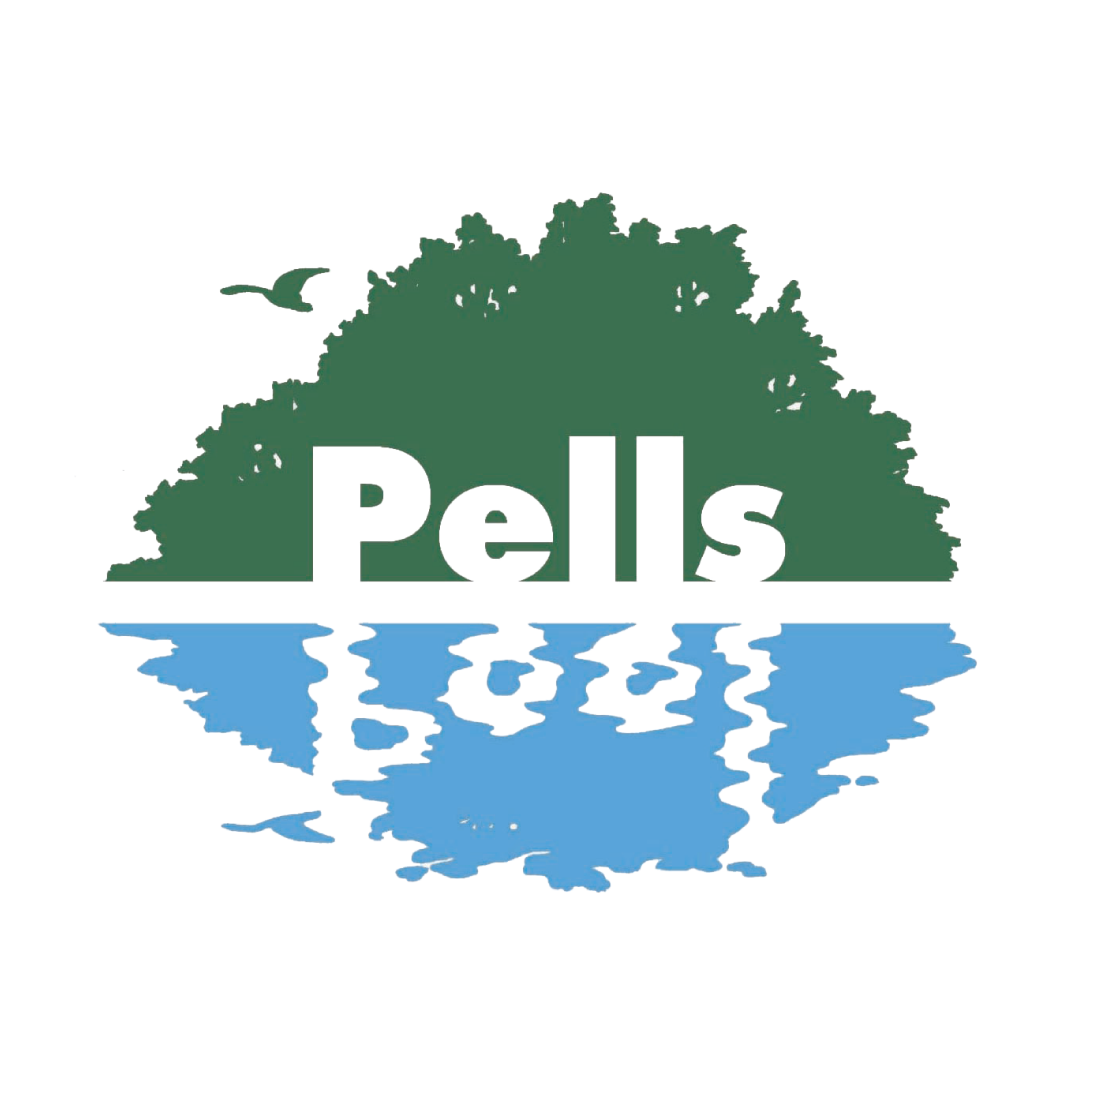 Pells Pool Community Association